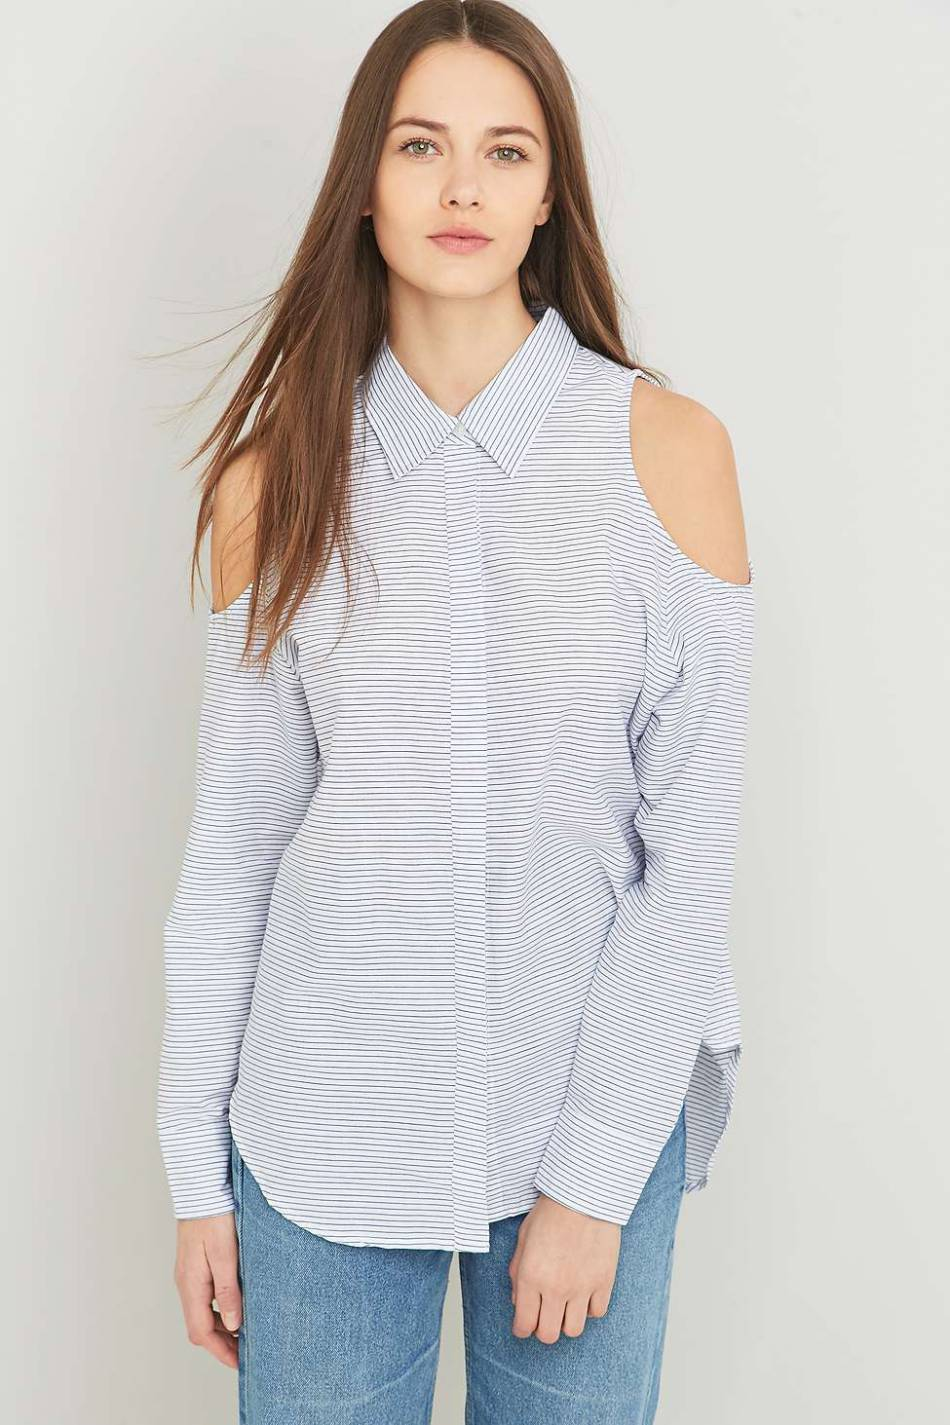 Chemise épaules ouvertes, Urban Outfitters, 80€.